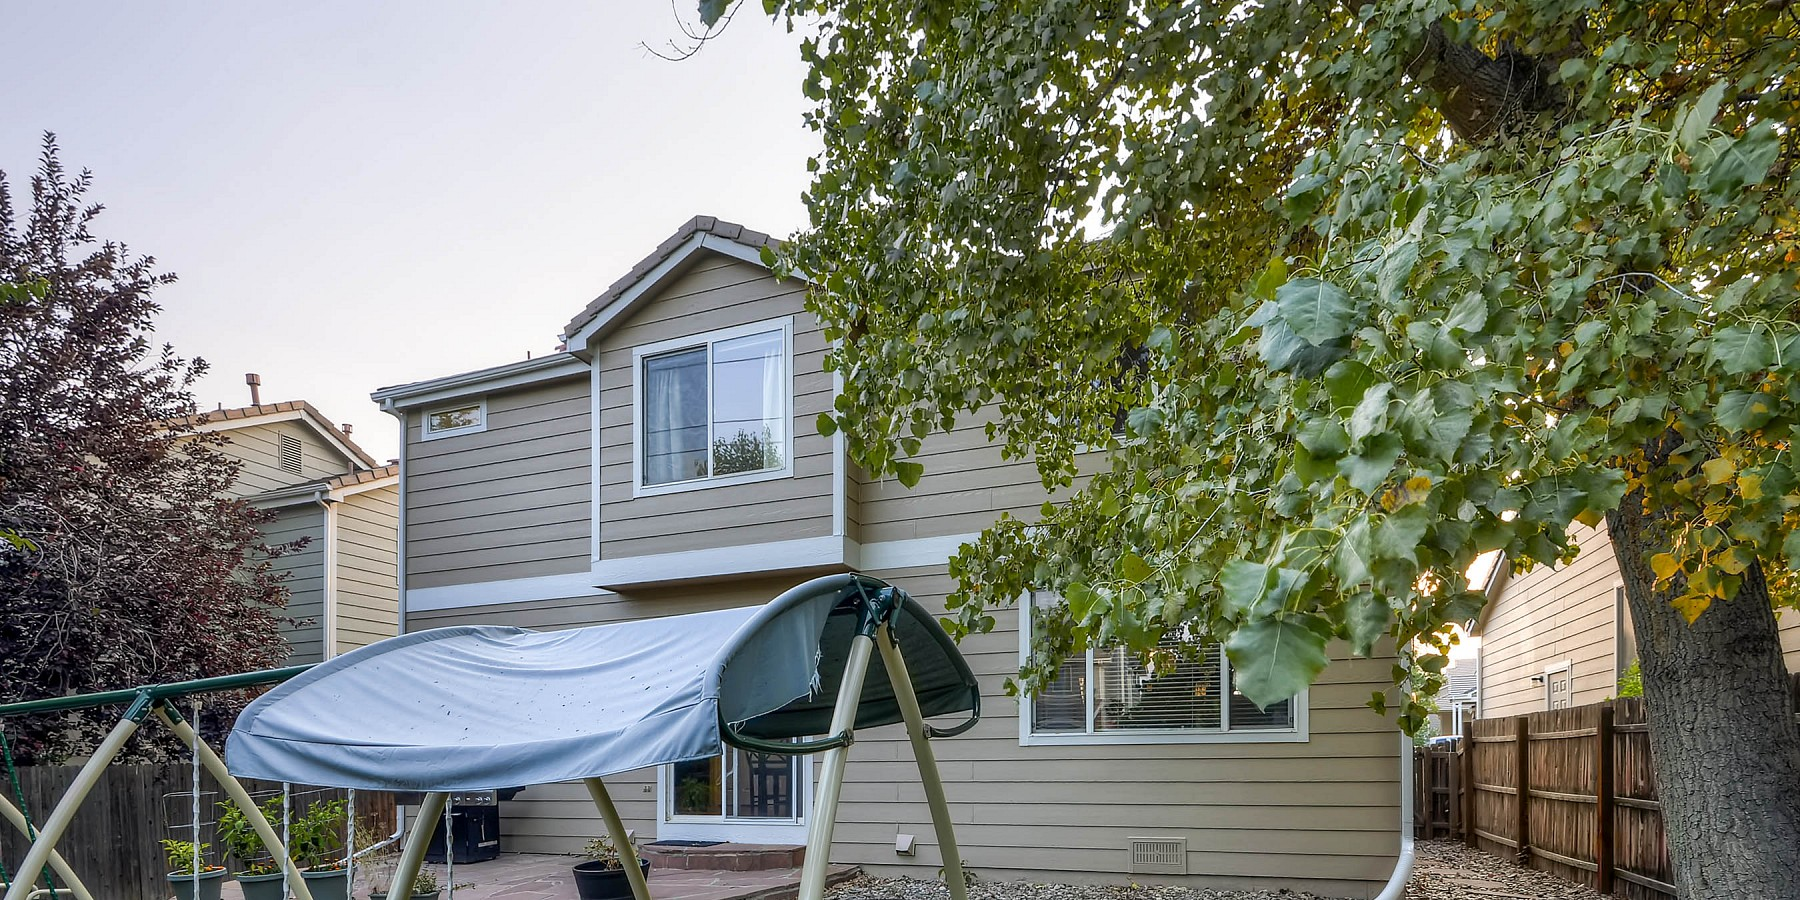 8336 South Pierce Way, Littleton, CO 80128